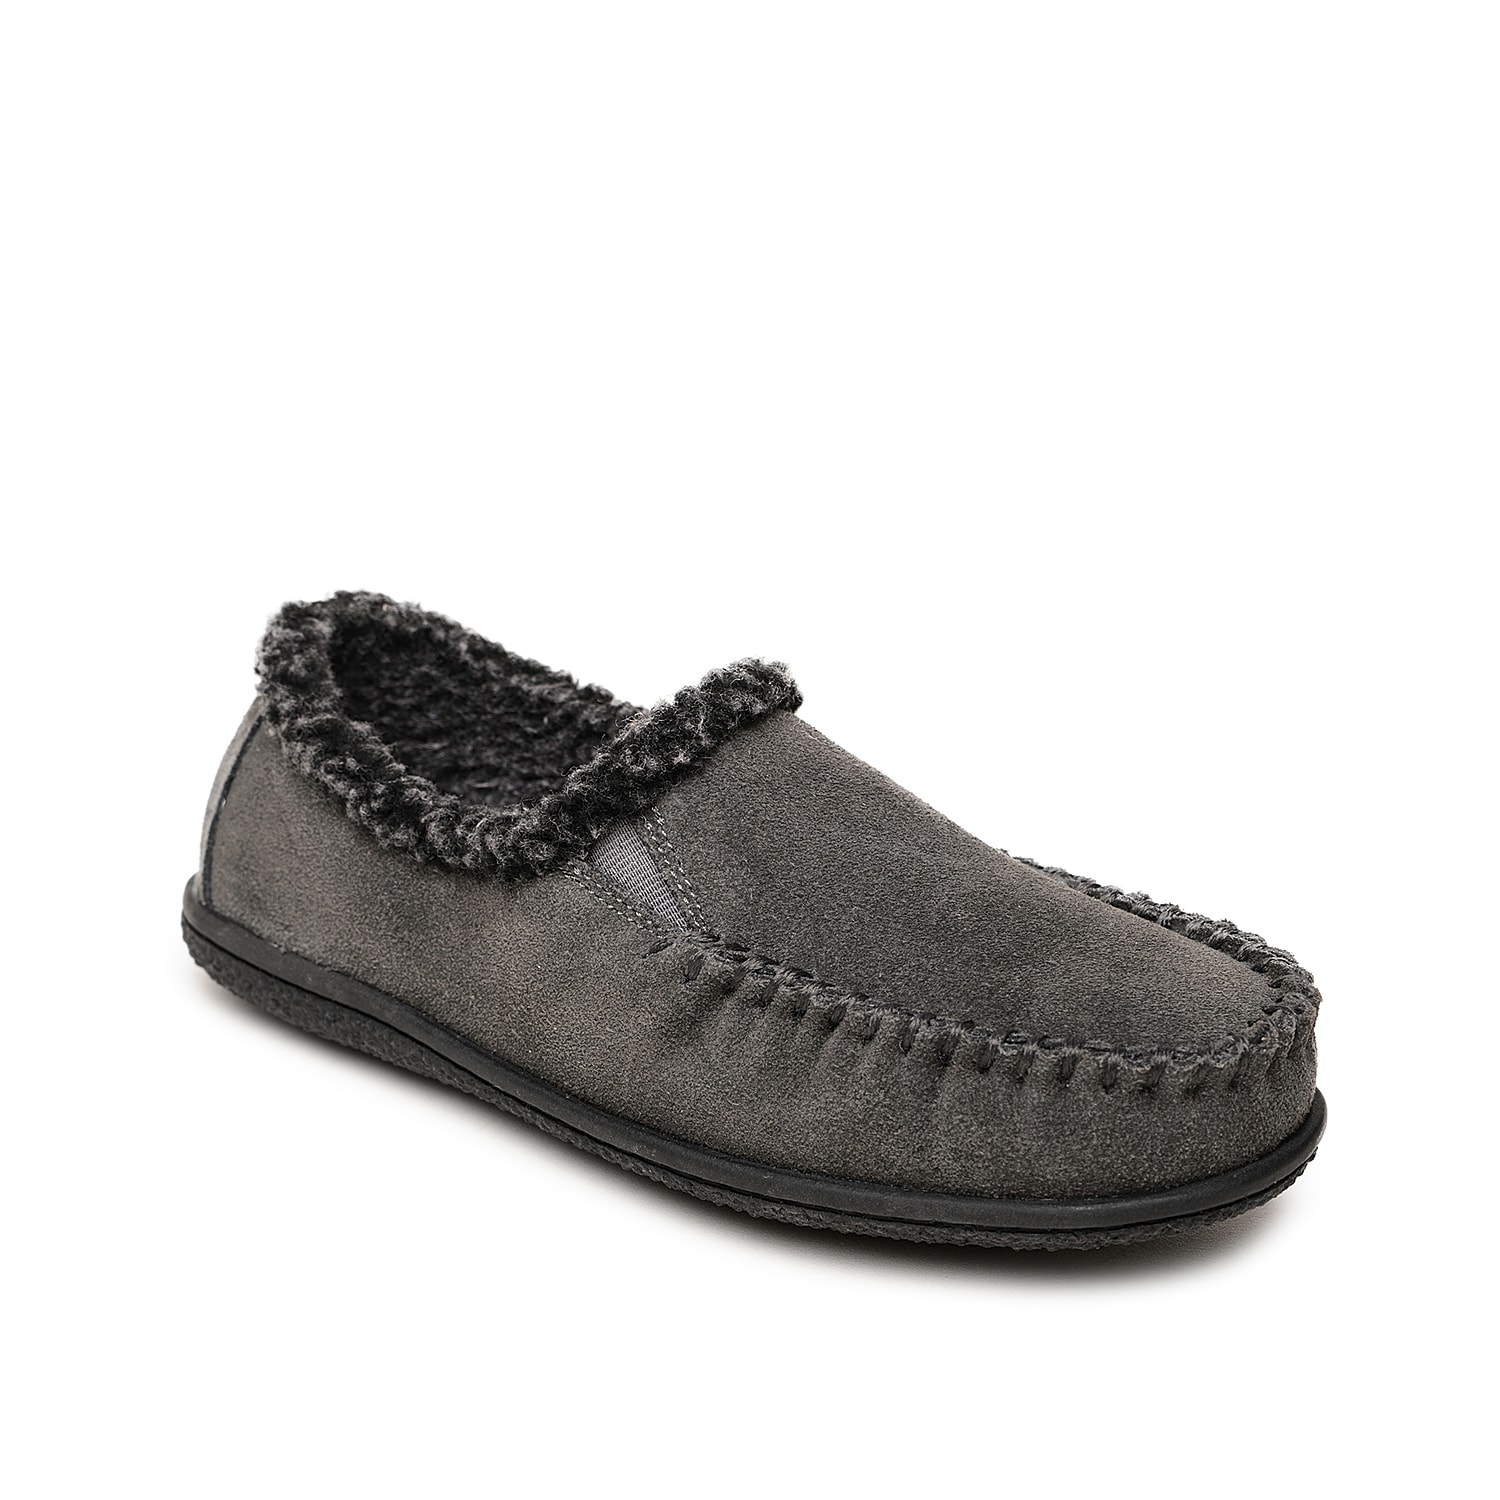 Take on the harsh cold weather in style wearing the Camp slip-on from Minnetonka. This suede pair features soft berber lining, cozy footbed and cushy foam midsole to keep your feet toasty and fresh.